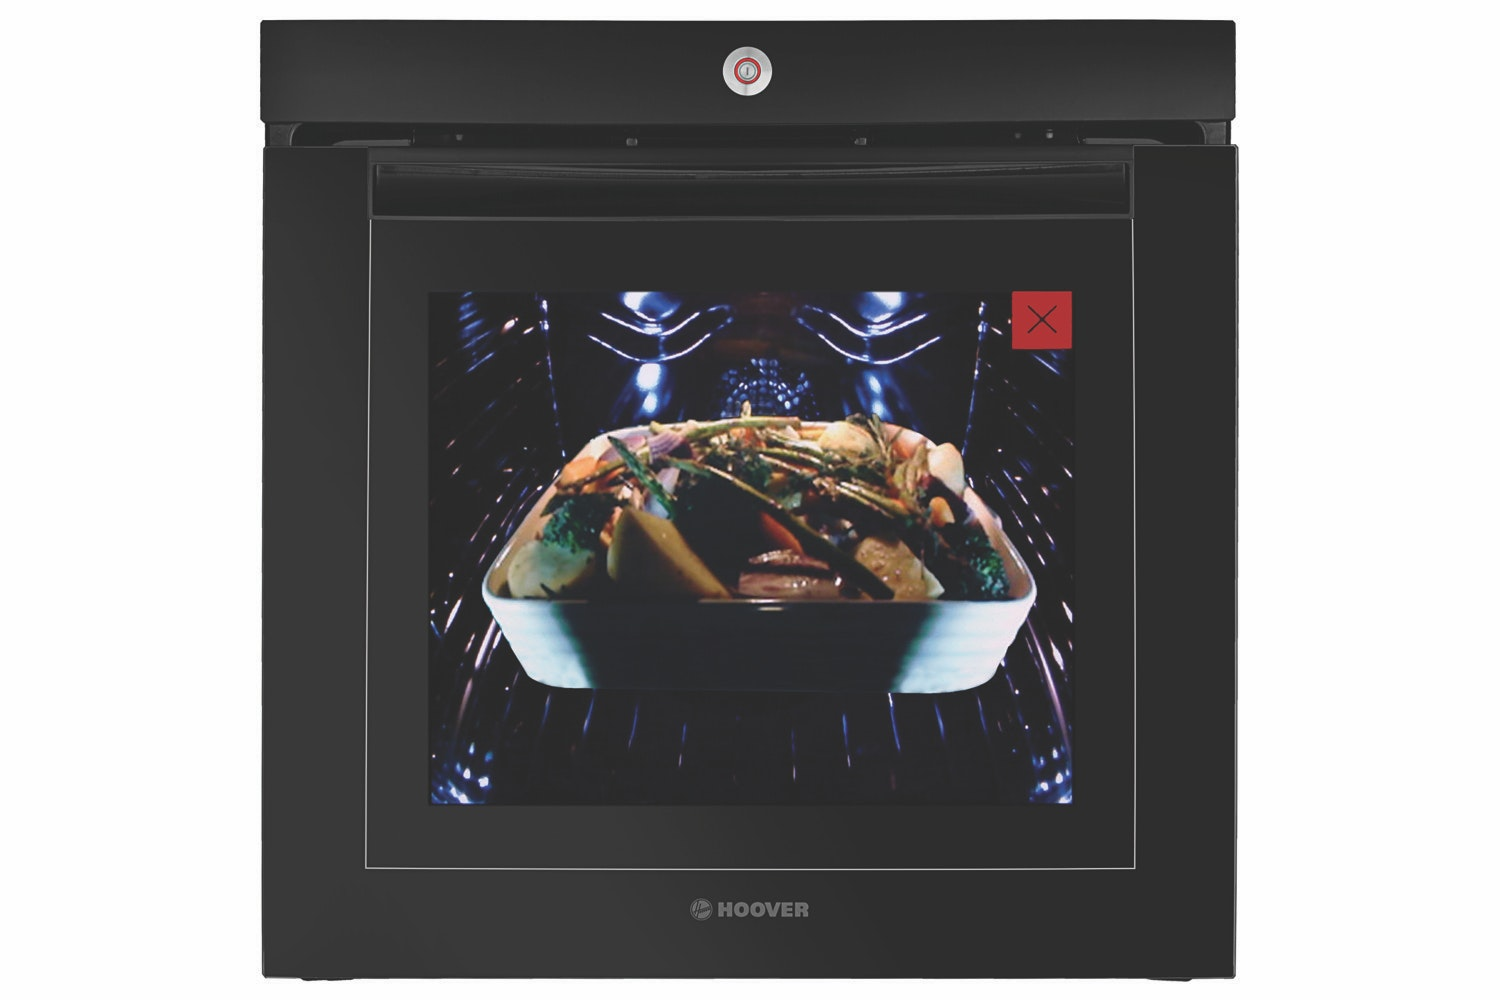 Hoover Vision 60cm Touch Screen Multifunction Oven